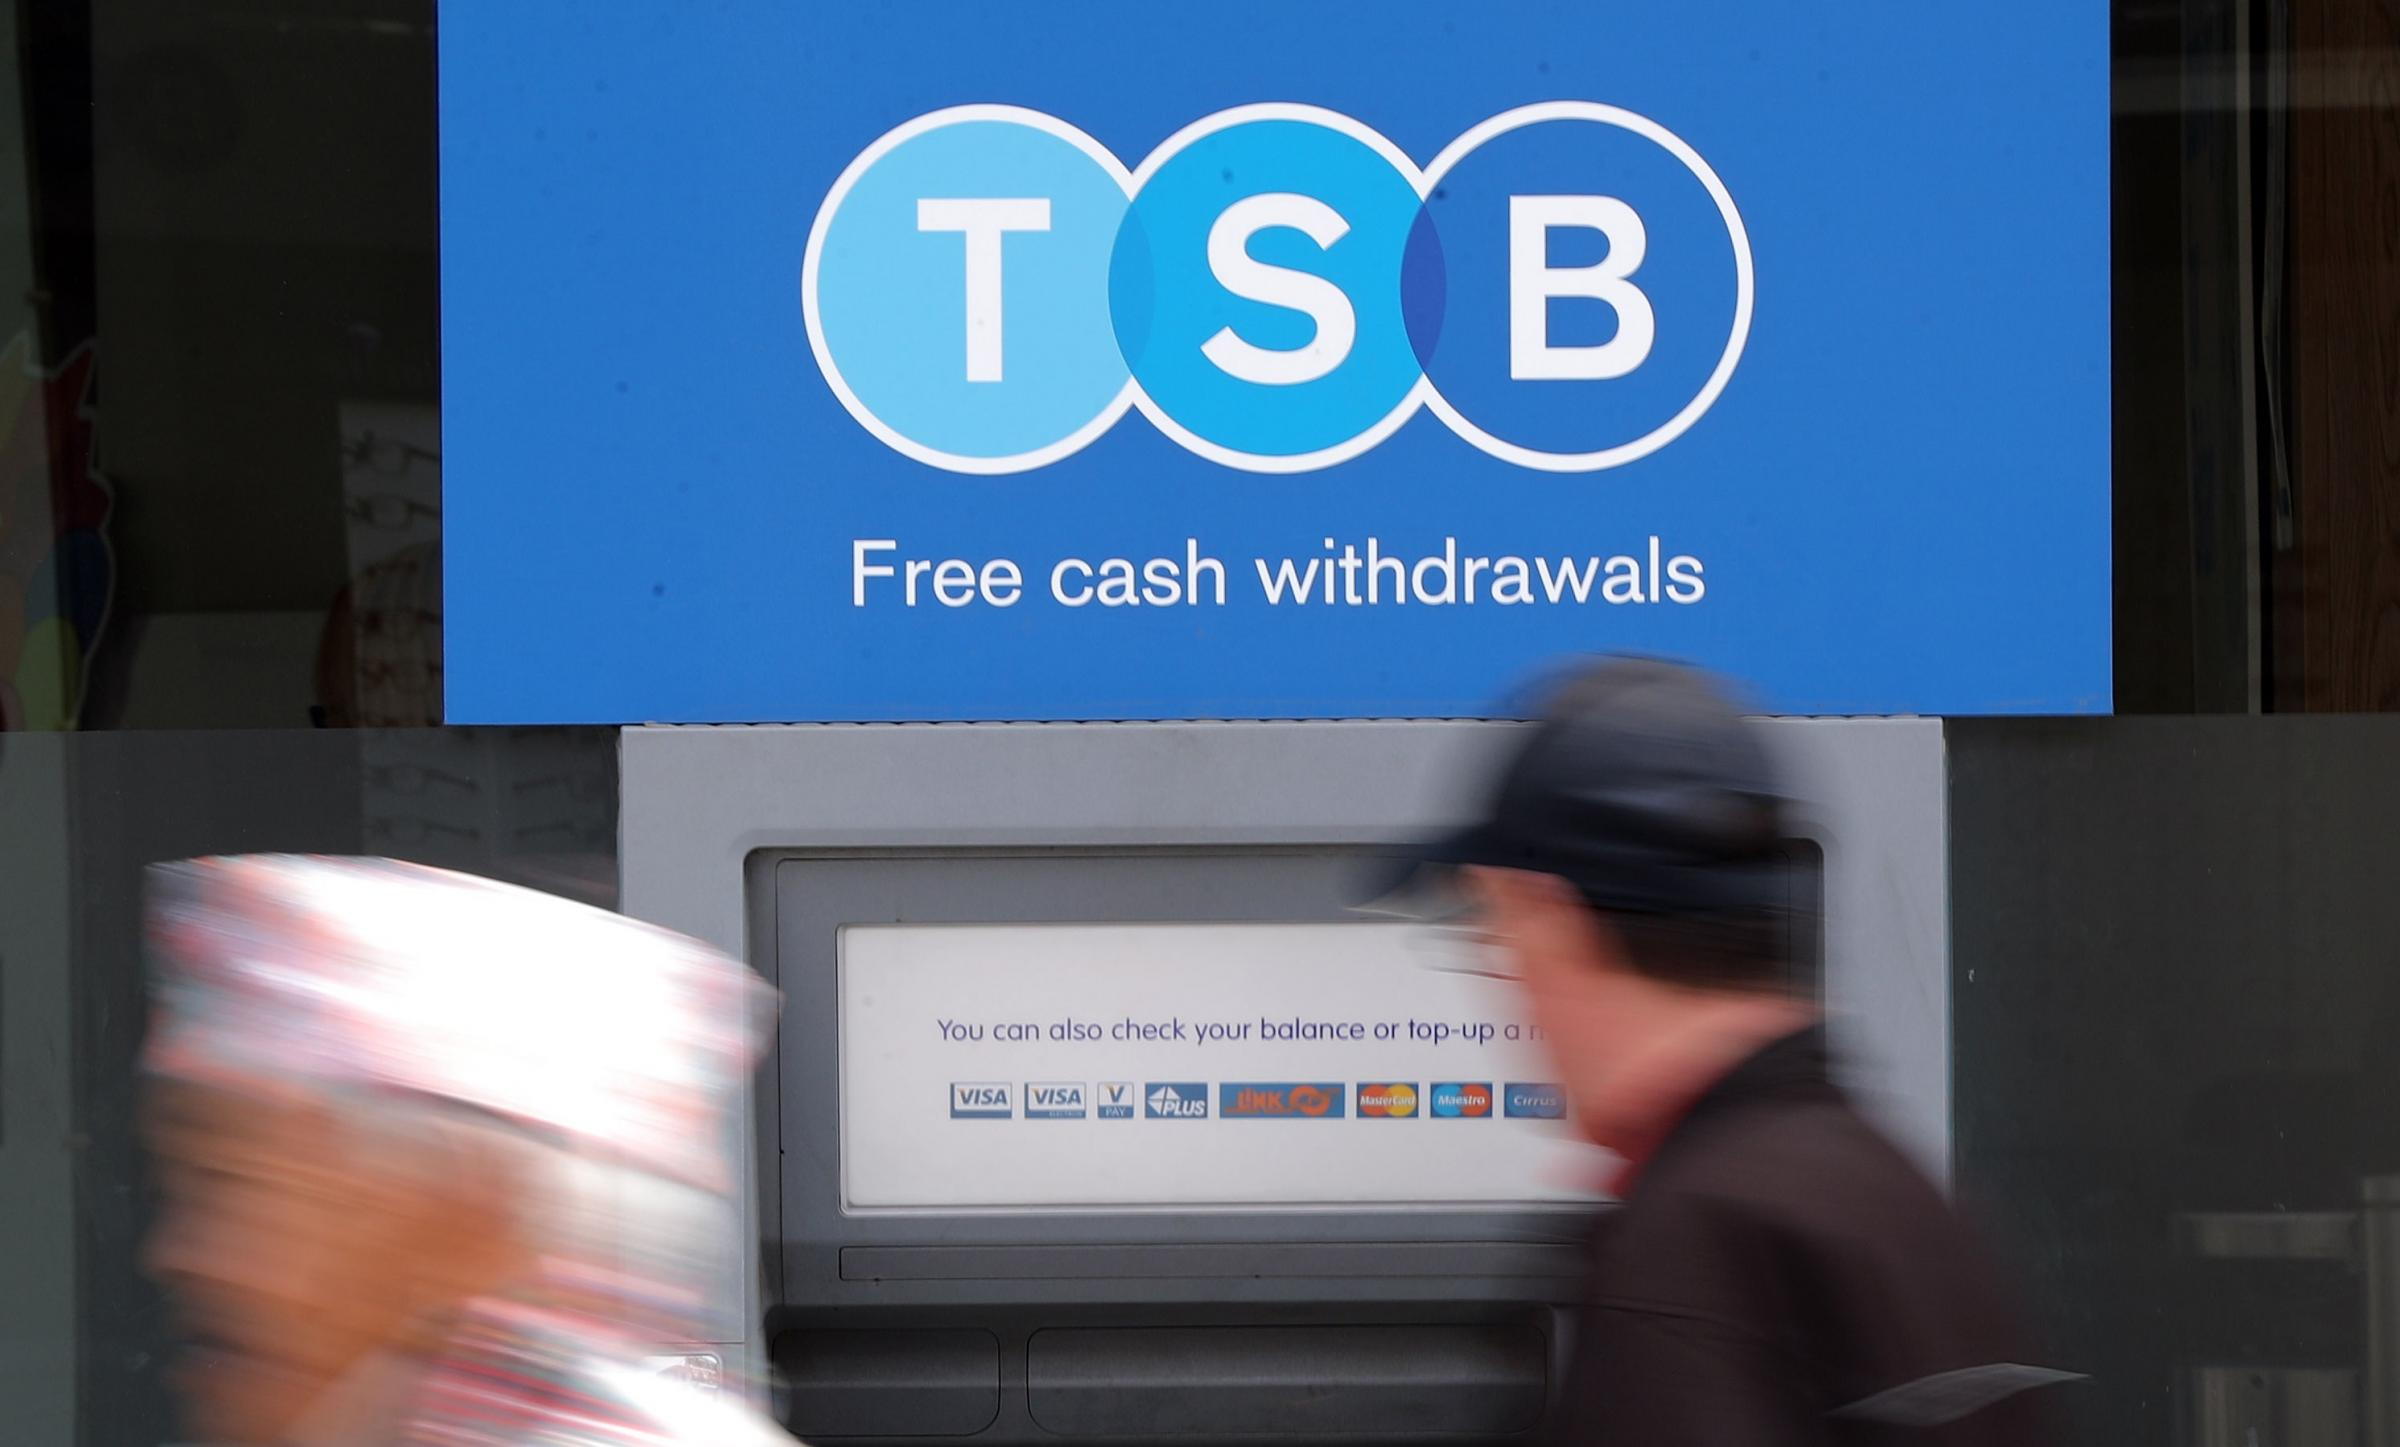 TSB came under fire last year for a huge IT meltdown